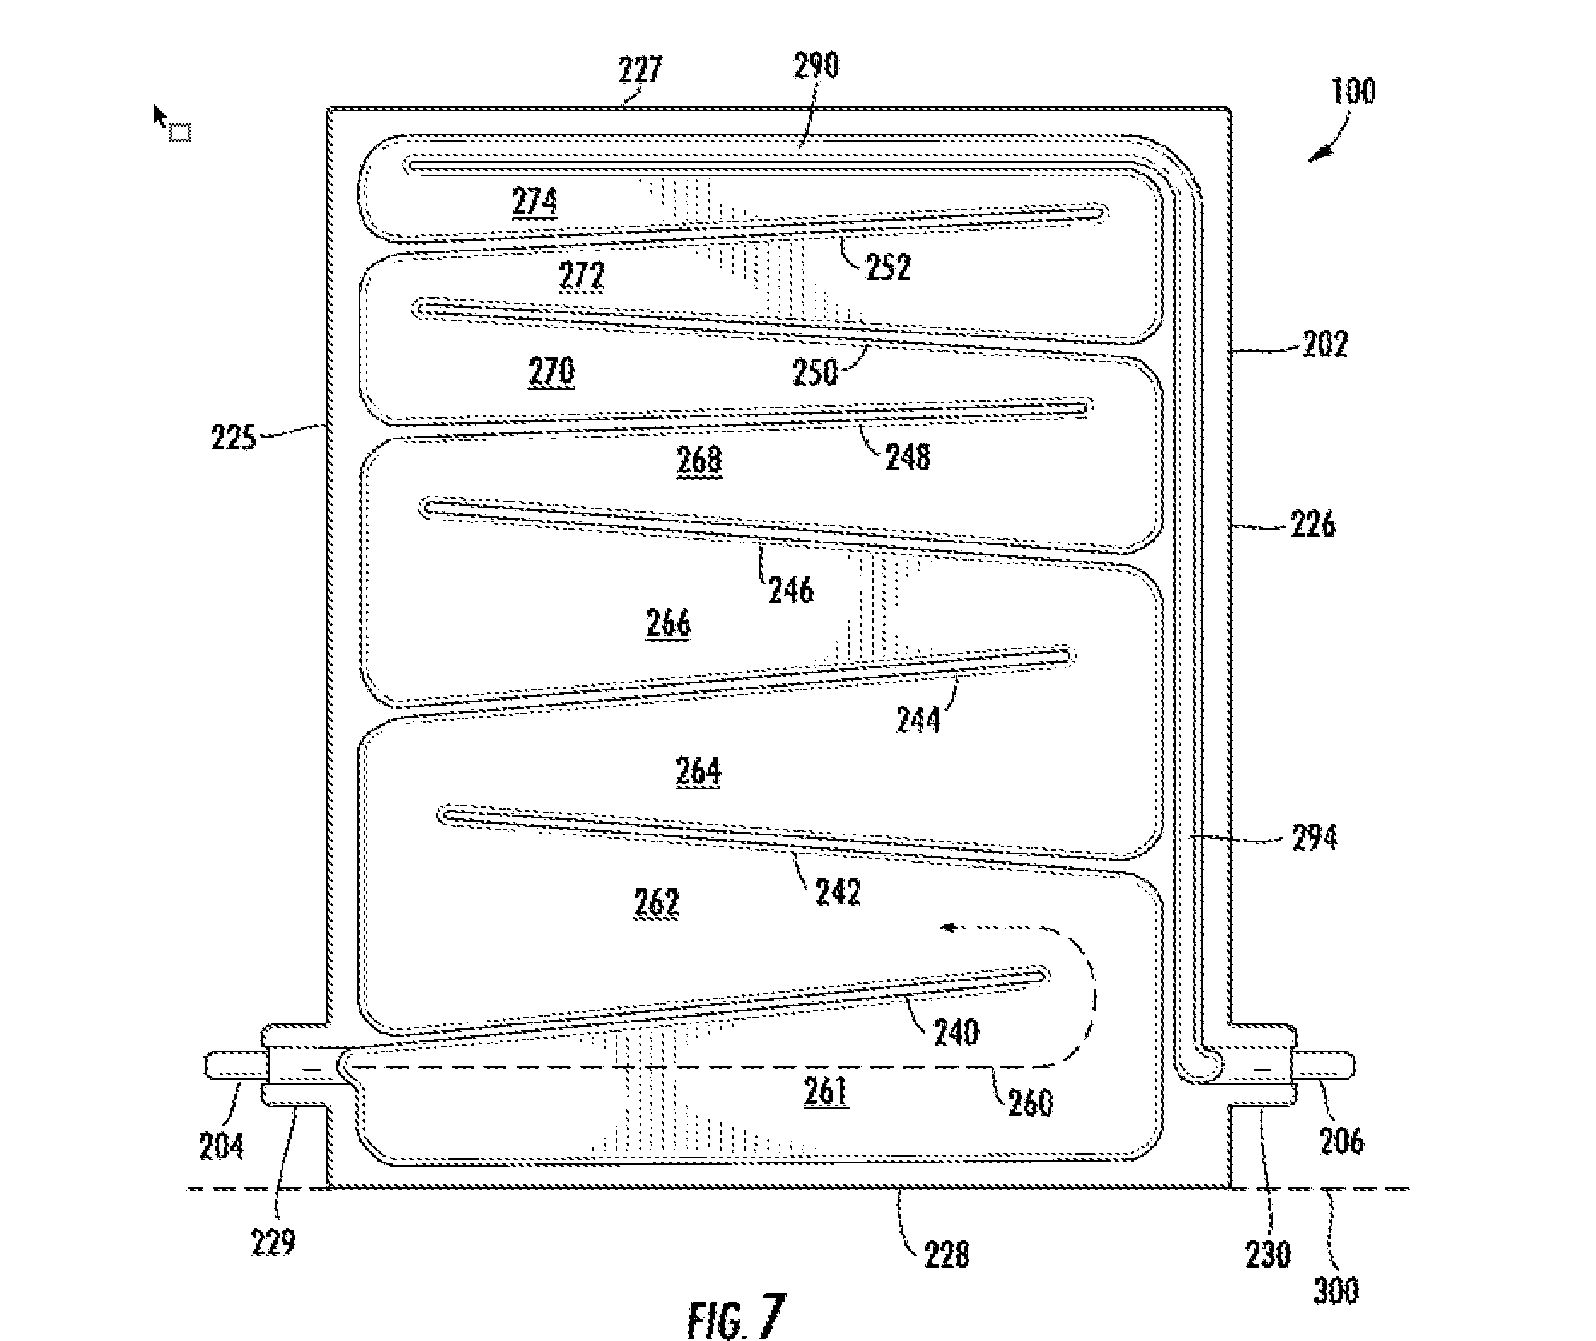 Figure 7 of LG's patent application shows a schematic of a first side of the heat exchanger 100